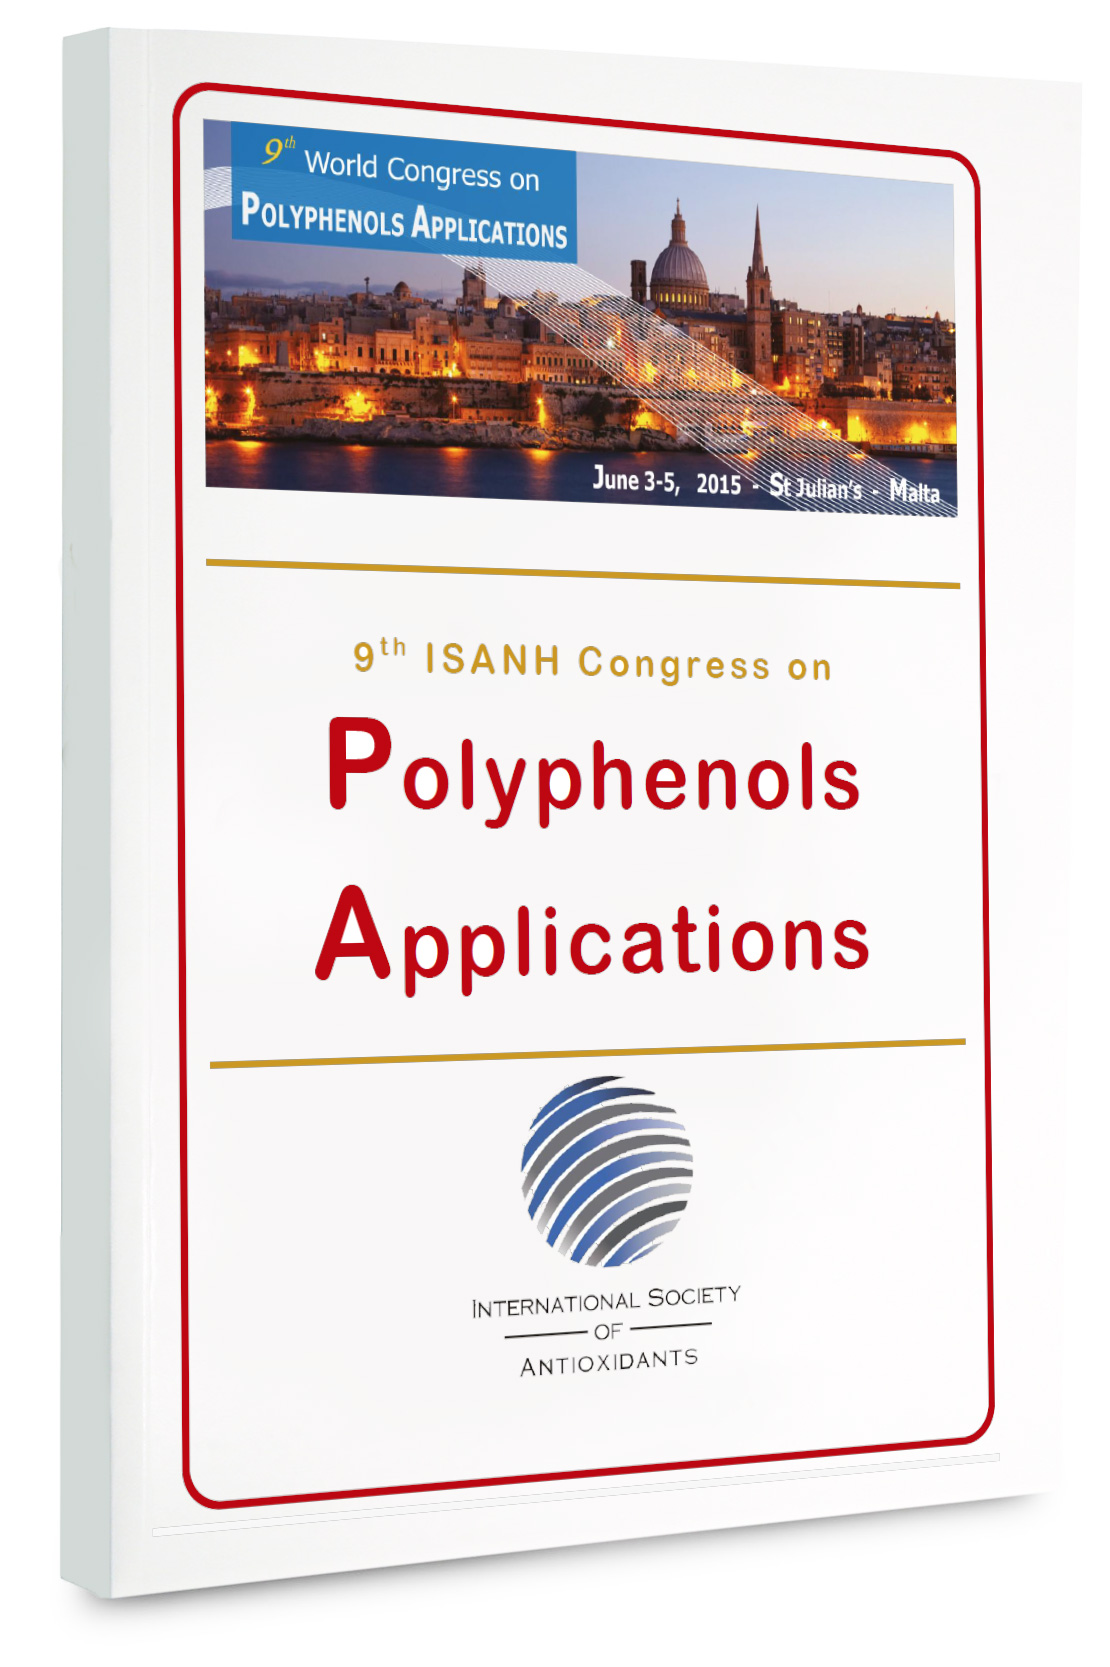 Abstract Book Polyphenols 2015 is Available